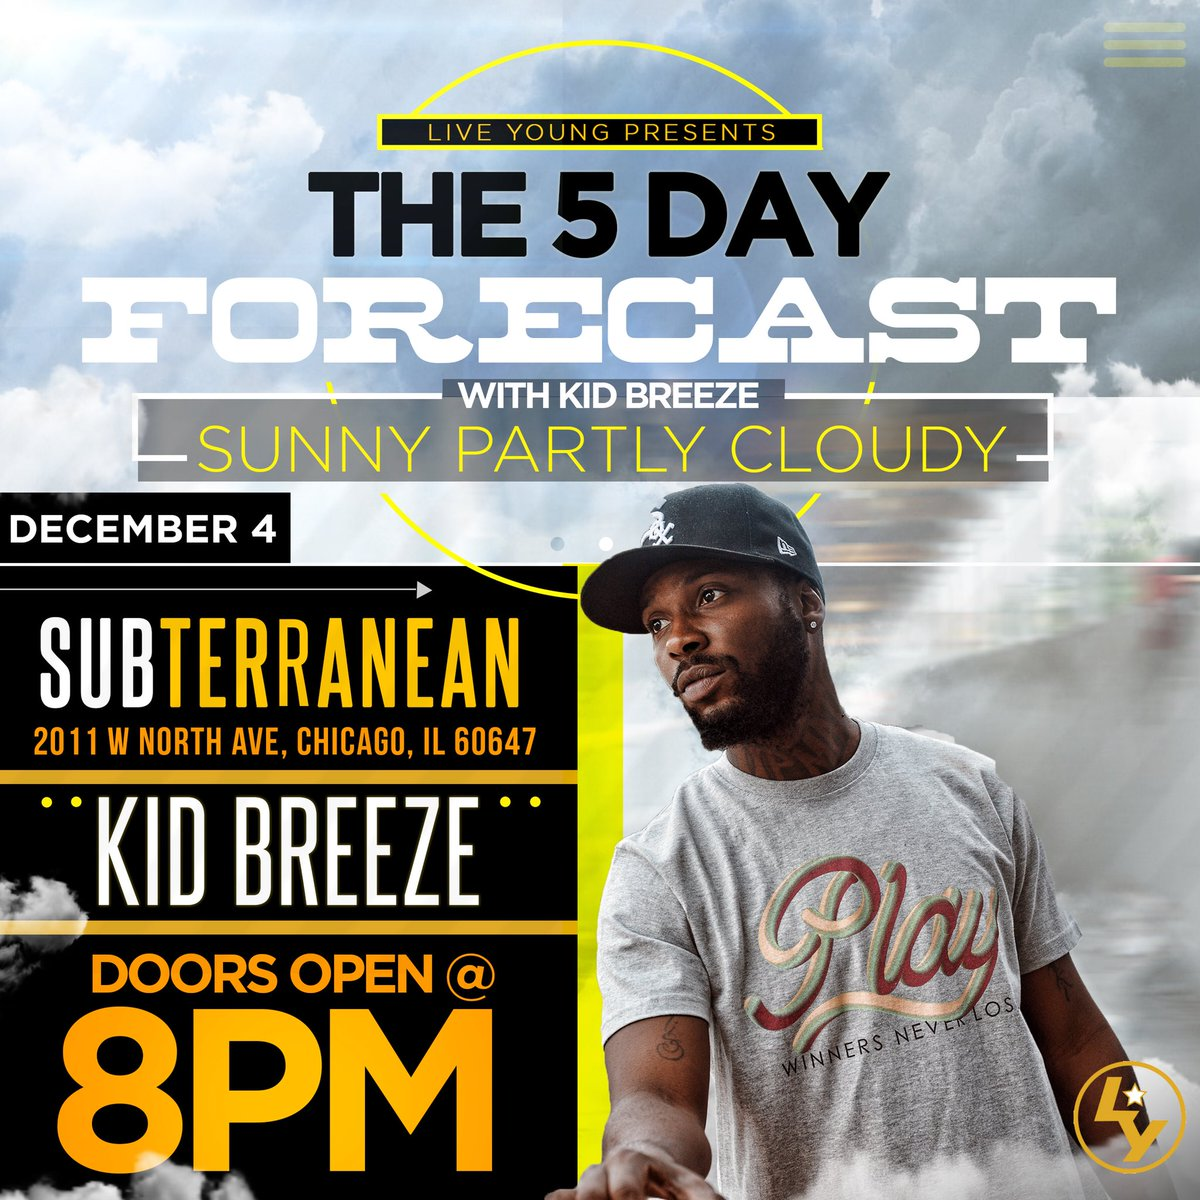 We Back @subtchicago 12/04/2019 For #TheFiveDayForecast W/ a whole bunch of dope performances❗️Catch me doing some joints from #SunnyAndPartlyCloudy LIVE  COME FWM! #QualityMusicForTheStreets  GET TICKETS HERE >>>>